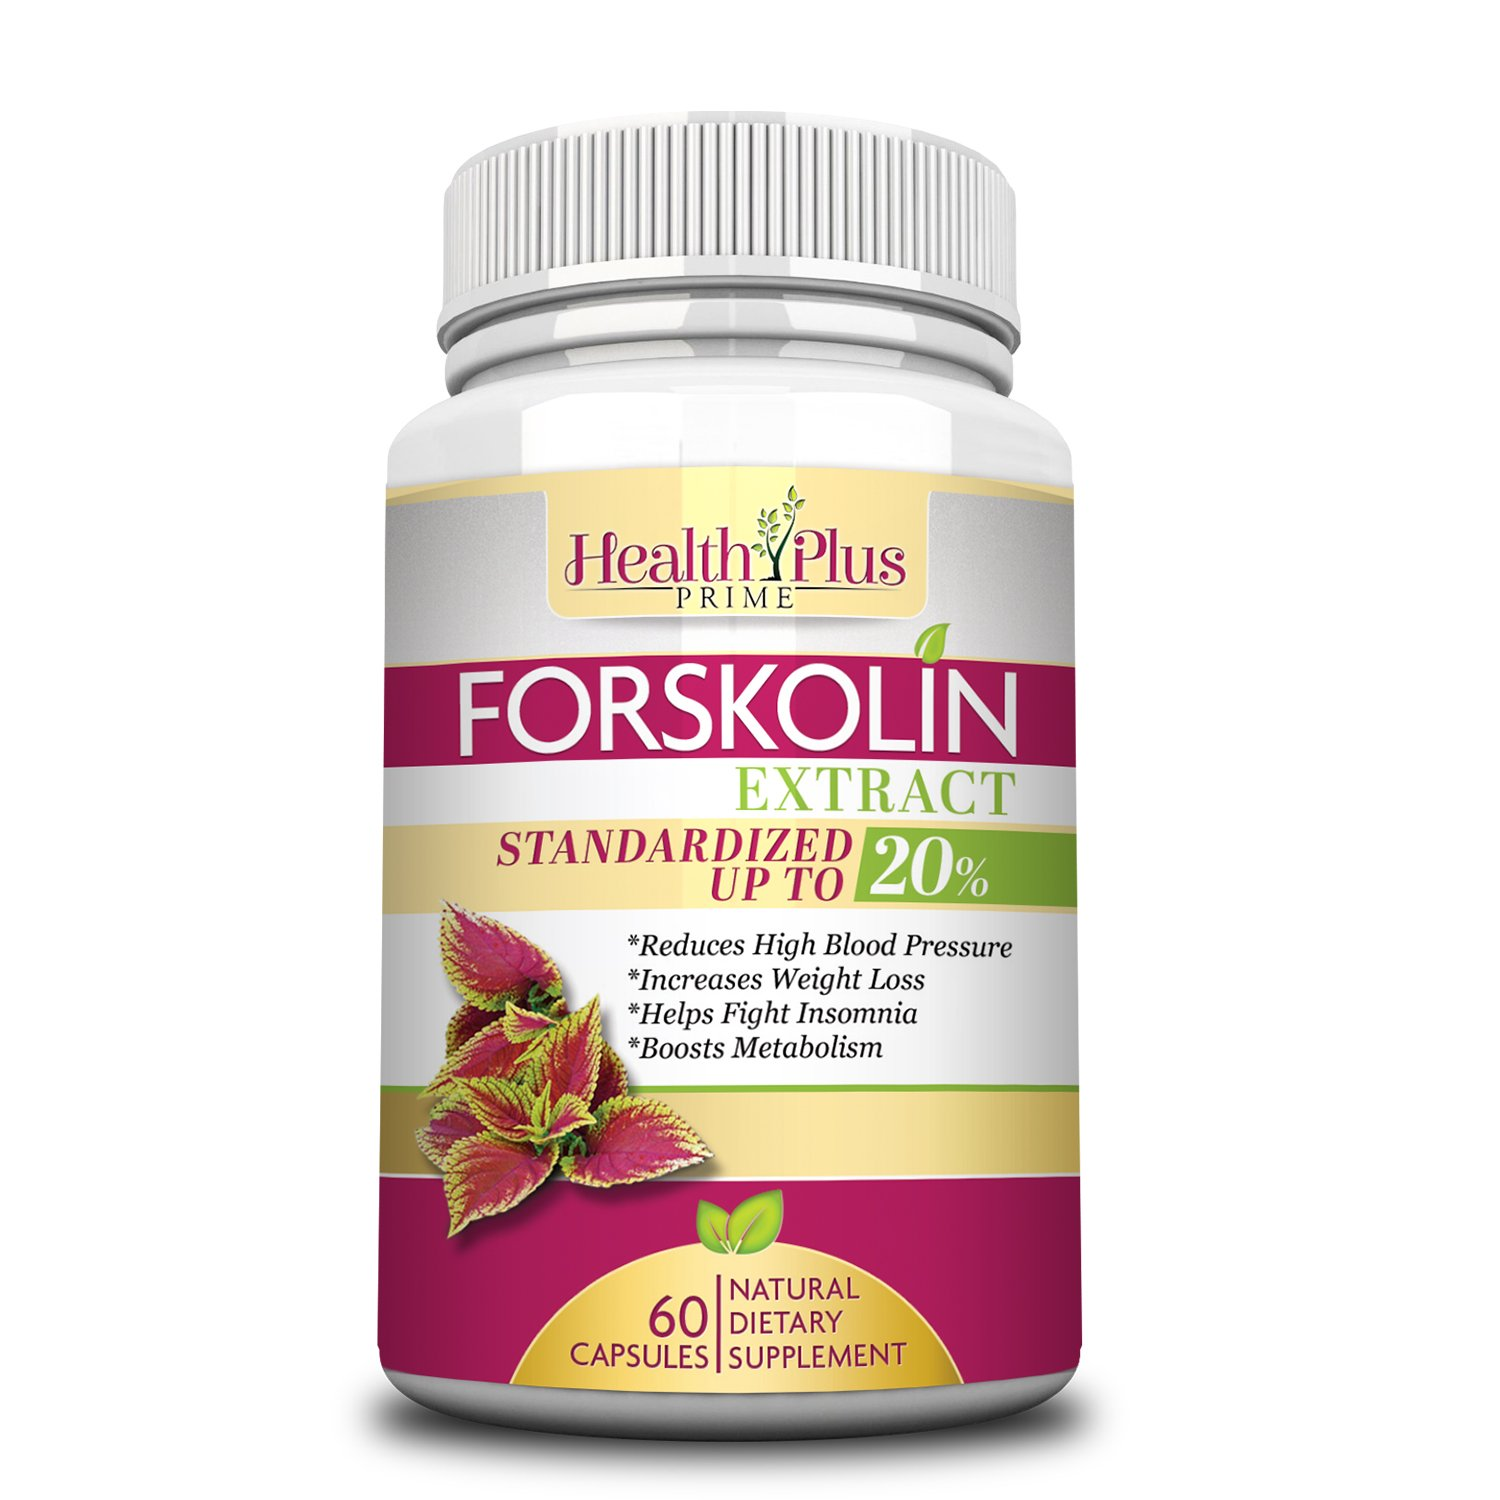 Best Appetite Suppressant 2020.Top 10 Best Appetite Suppressants Buying Guide 2019 2020 On